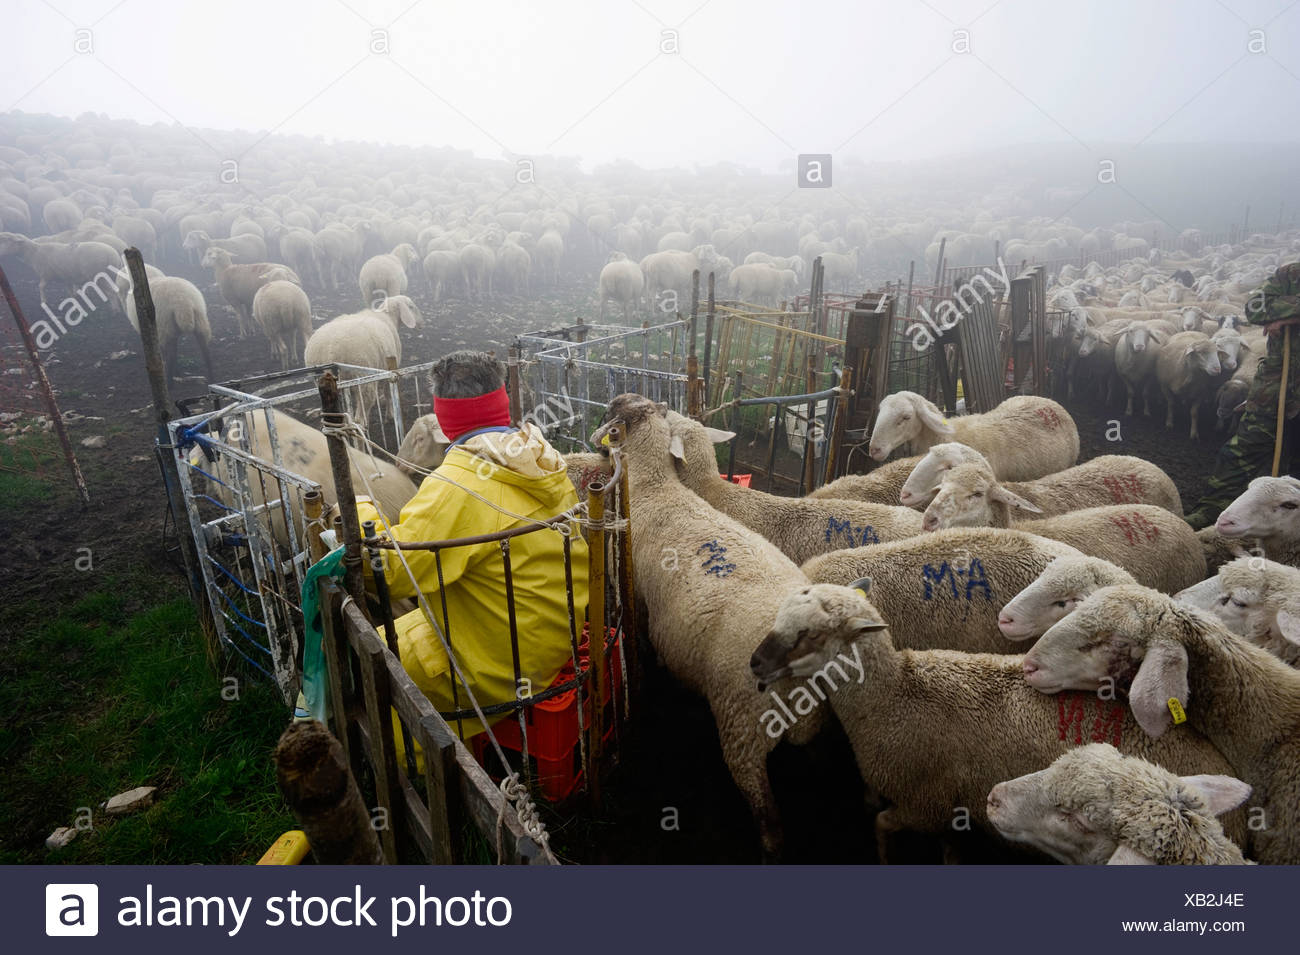 Vet examining a flock of sheep in the early morning in the Monte Sibillini mountains, Apennines, Le Marche, Italy, Europe Stock Photo